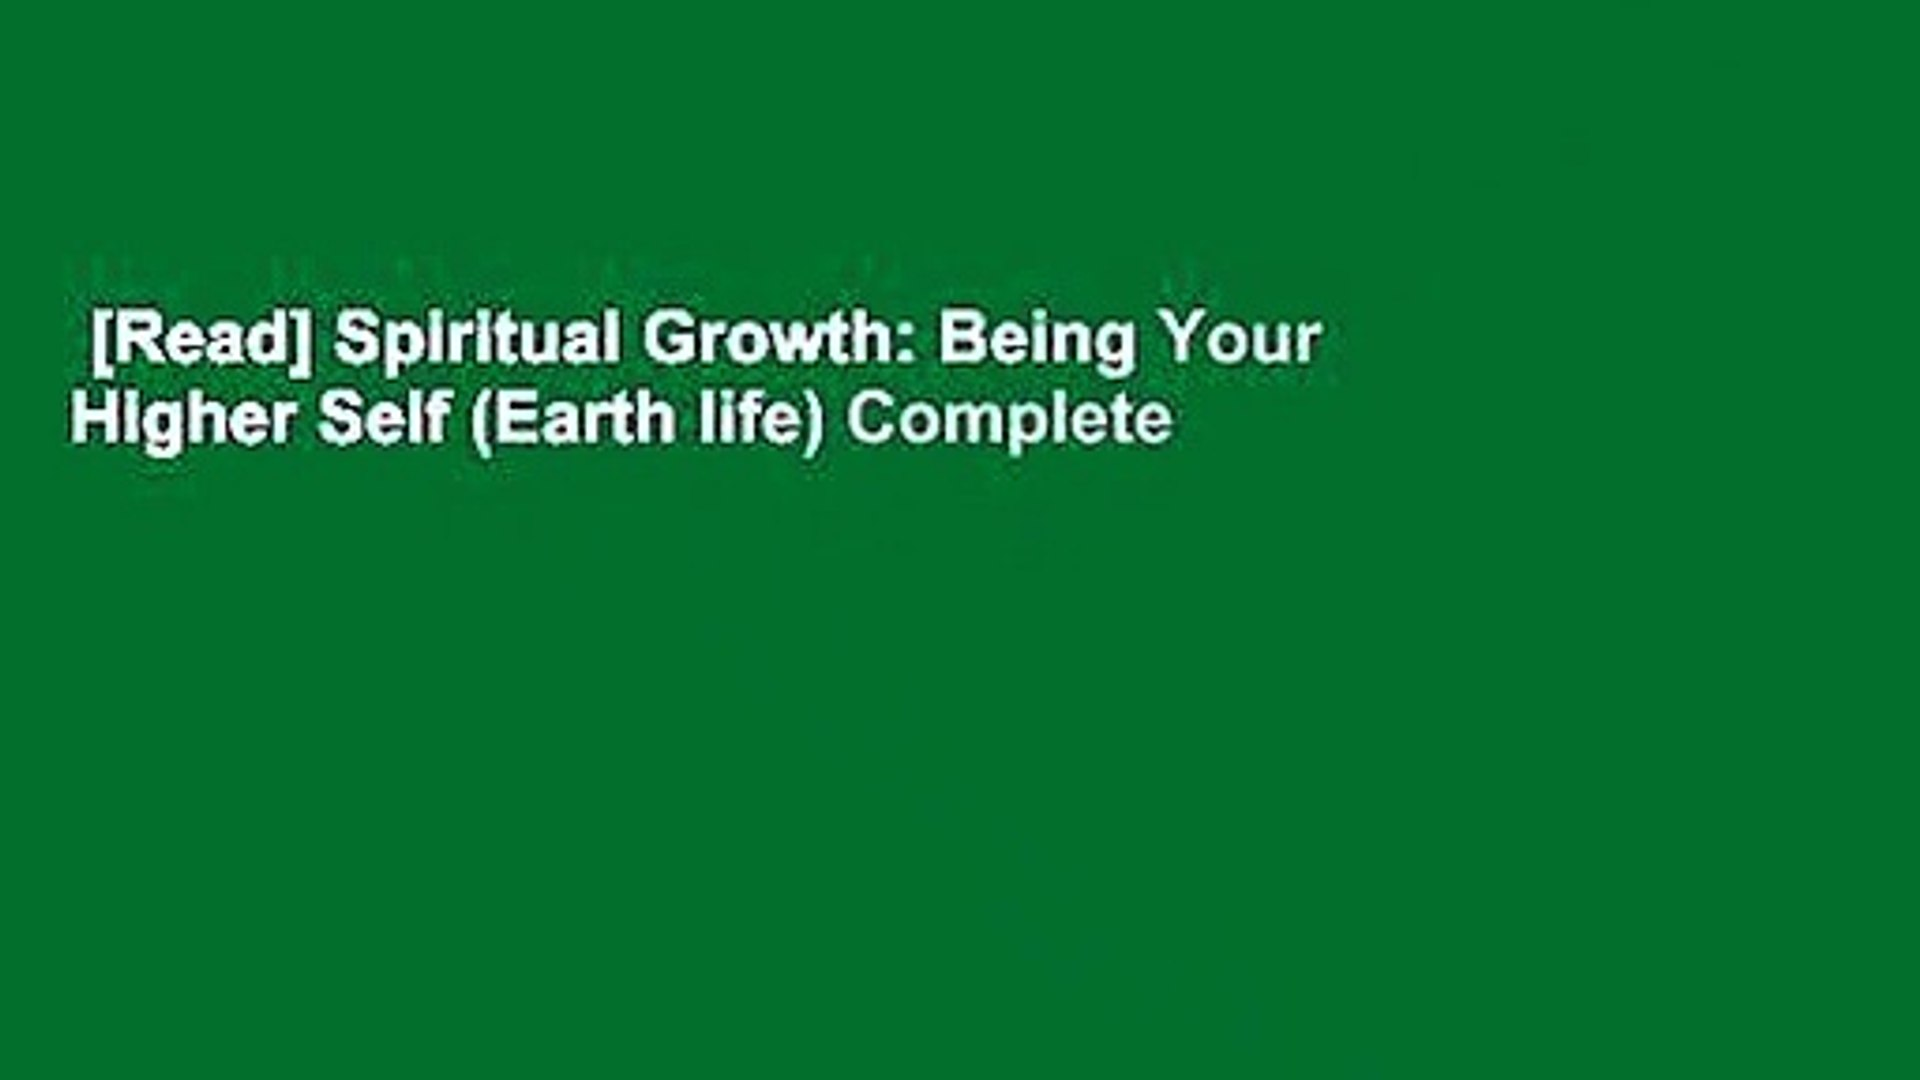 [Read] Spiritual Growth: Being Your Higher Self (Earth life) Complete